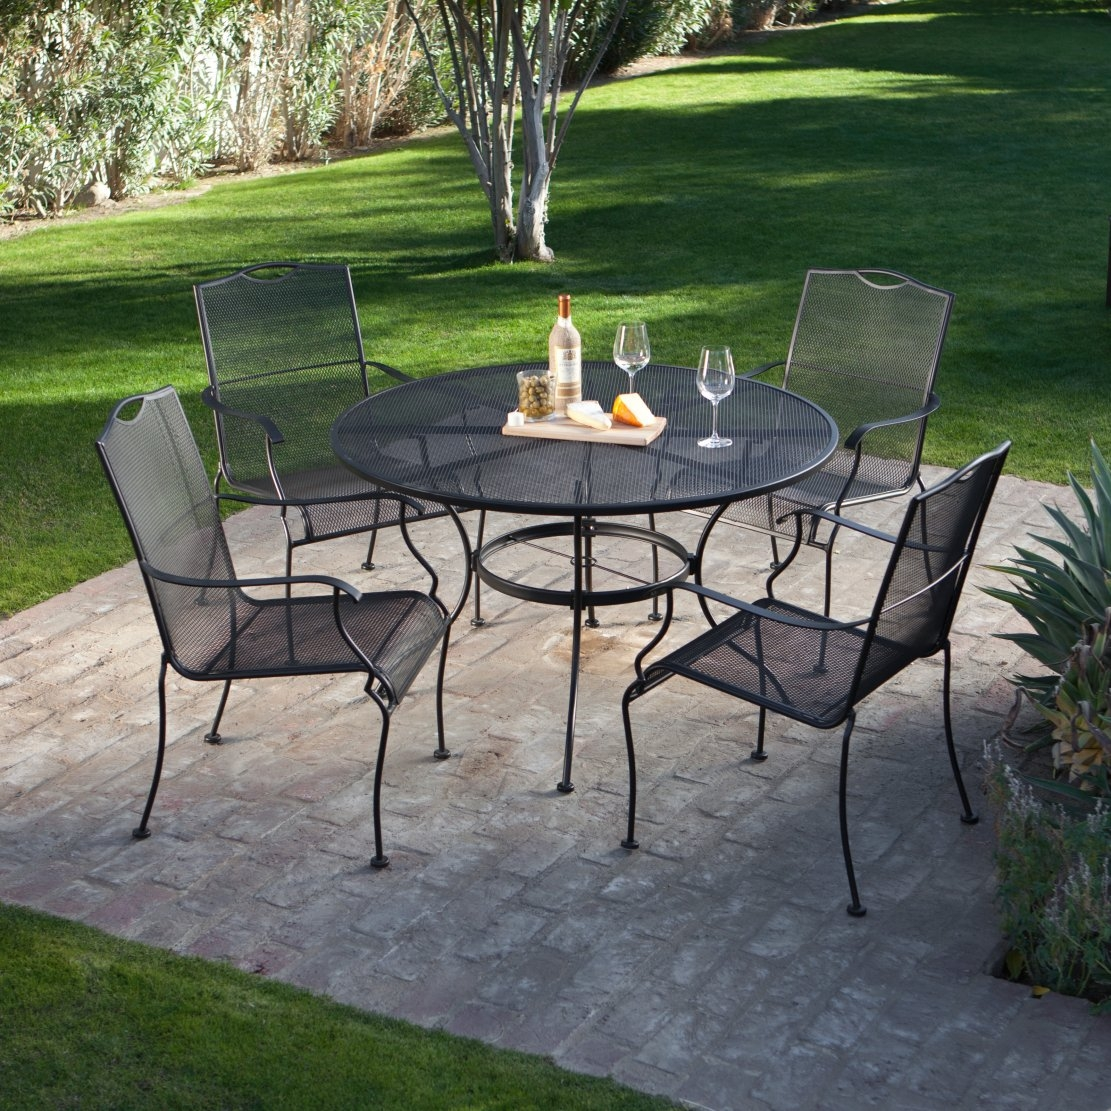 5-Piece Wrought Iron Patio Furniture Dining Set - Seats 4 : backyard table set - pezcame.com